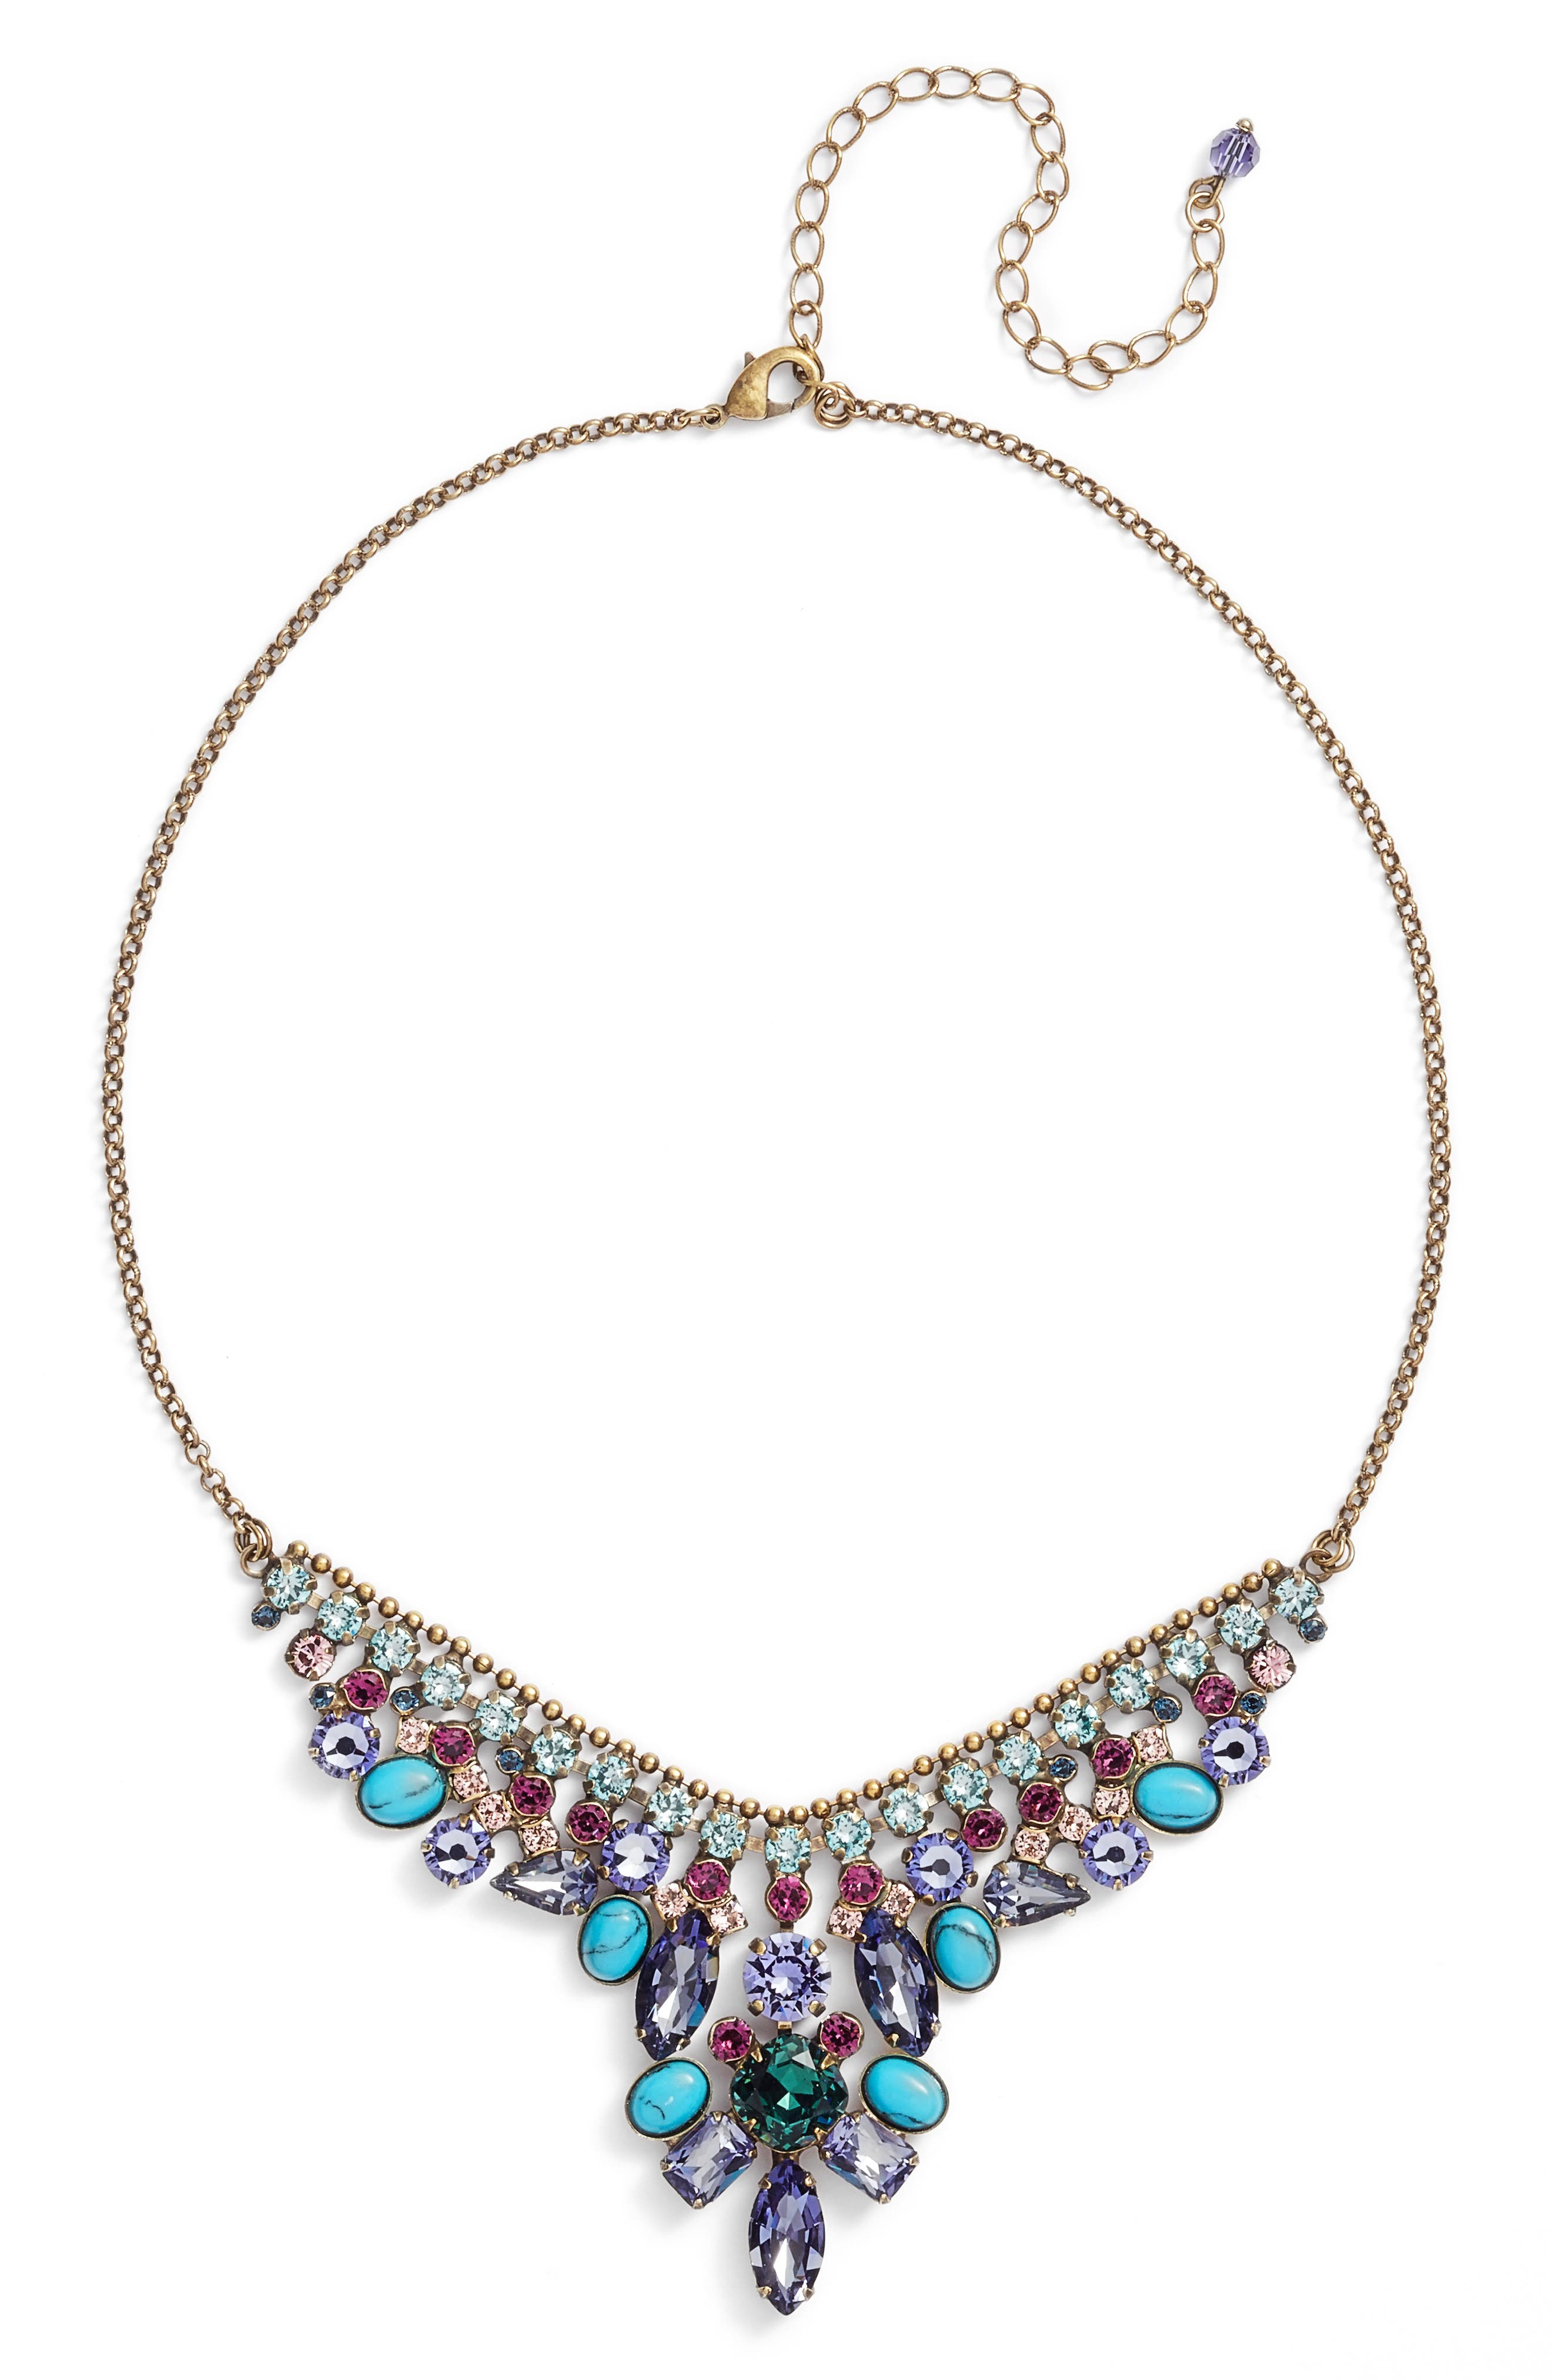 Vervain Frontal Necklace,                             Main thumbnail 1, color,